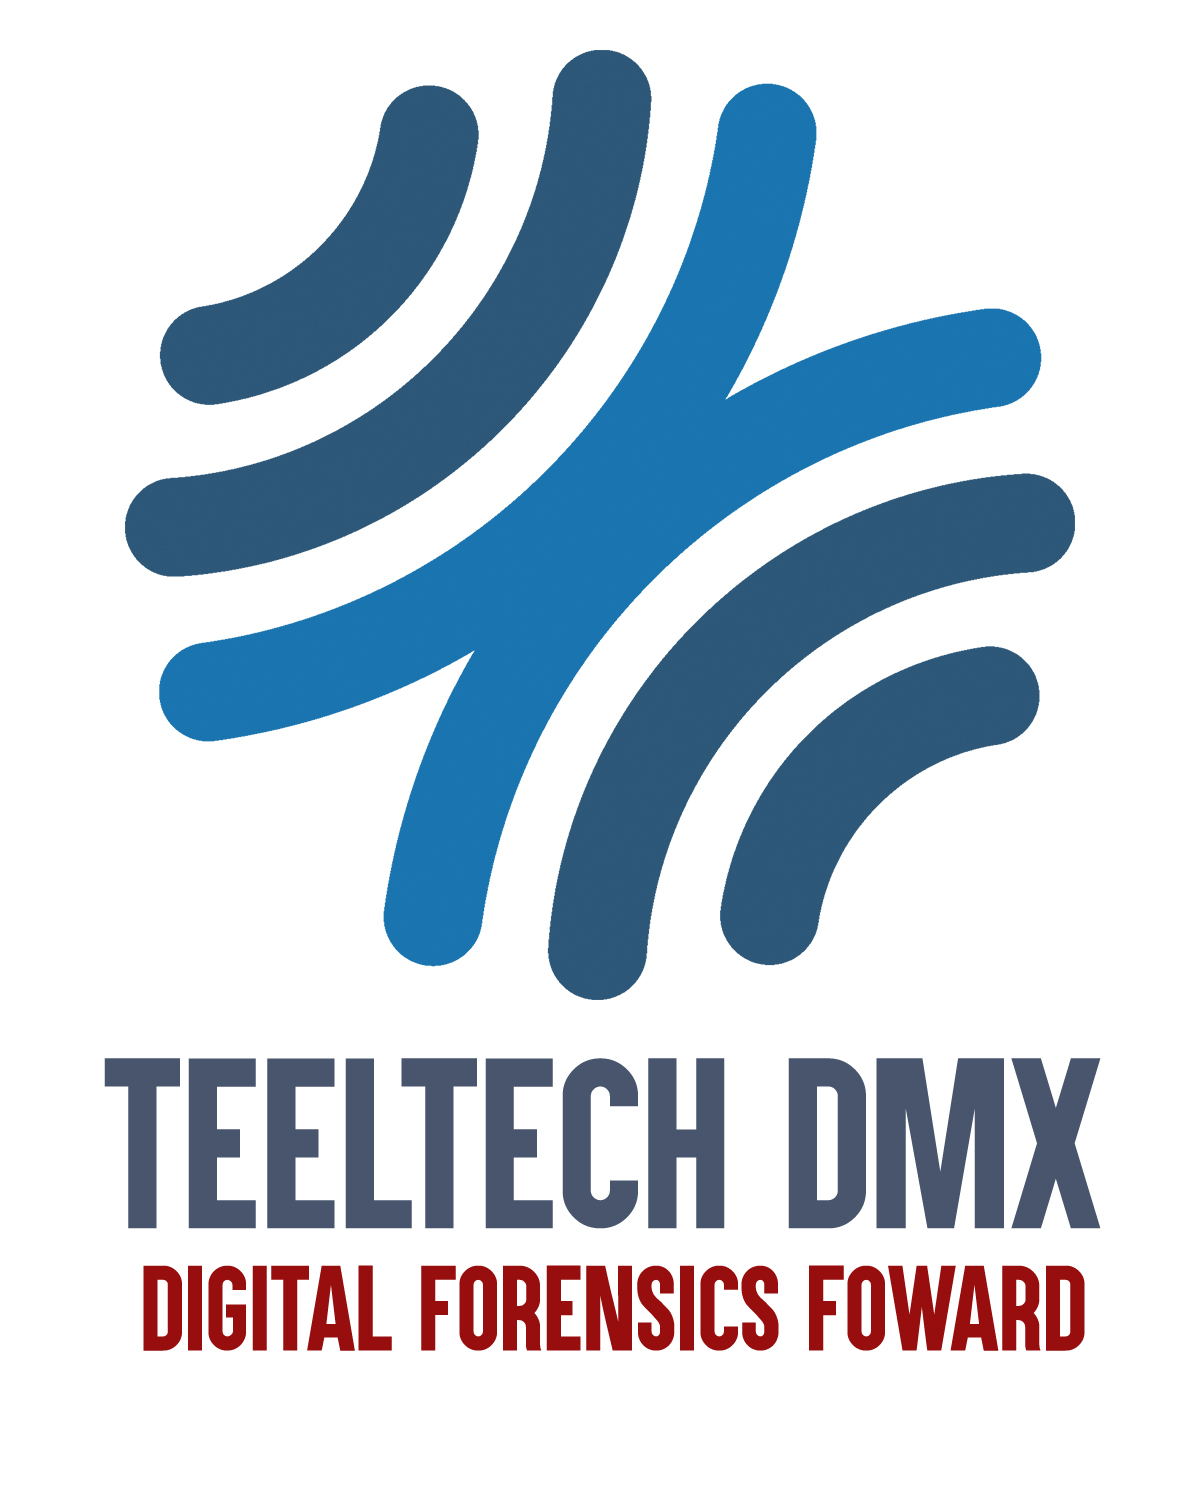 DMX Digital Forensics Forward